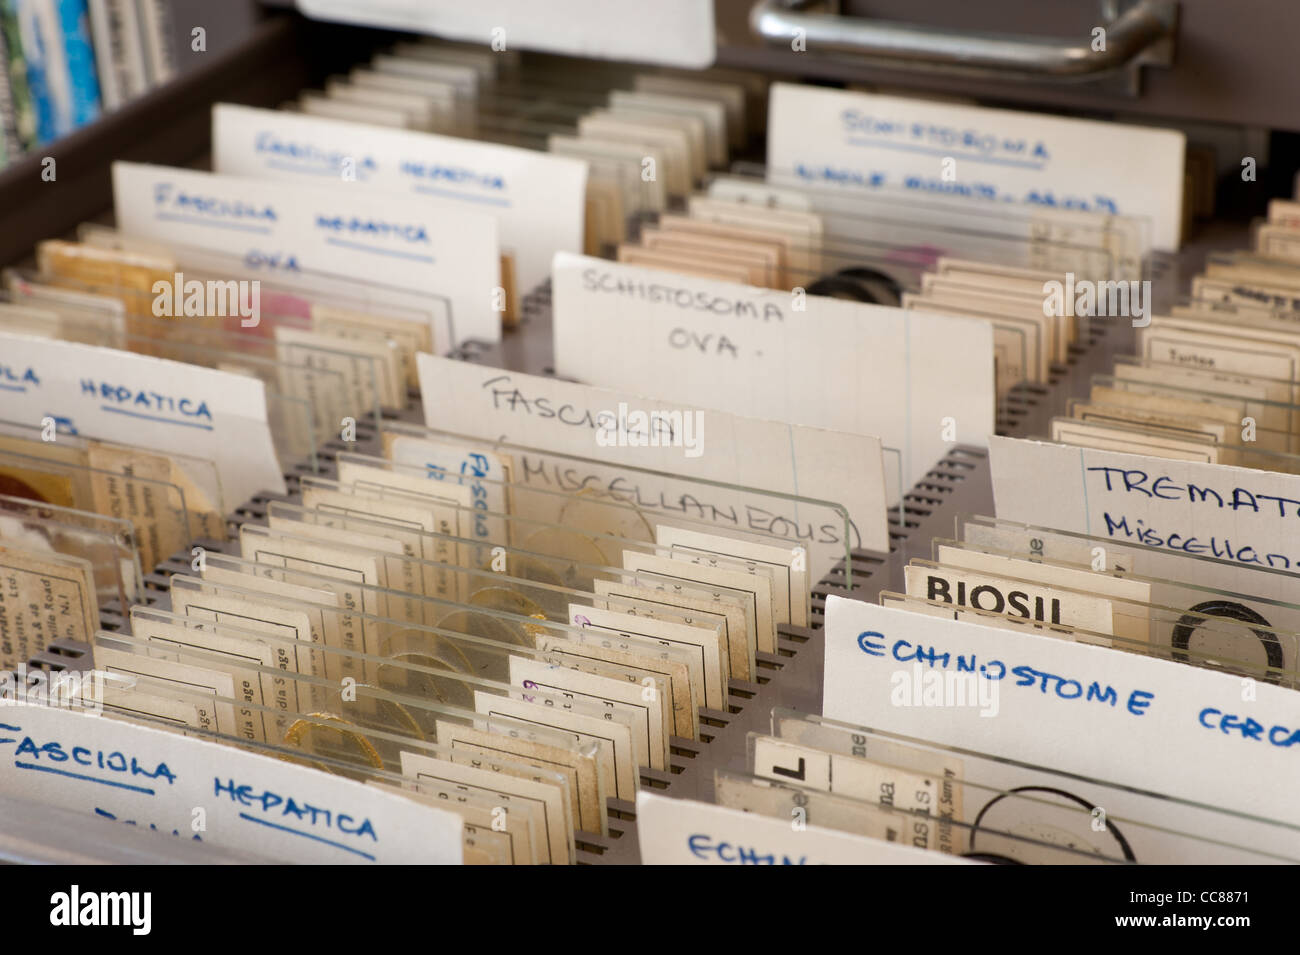 Rows of glass microscope slides of parasites in tray organized for ...